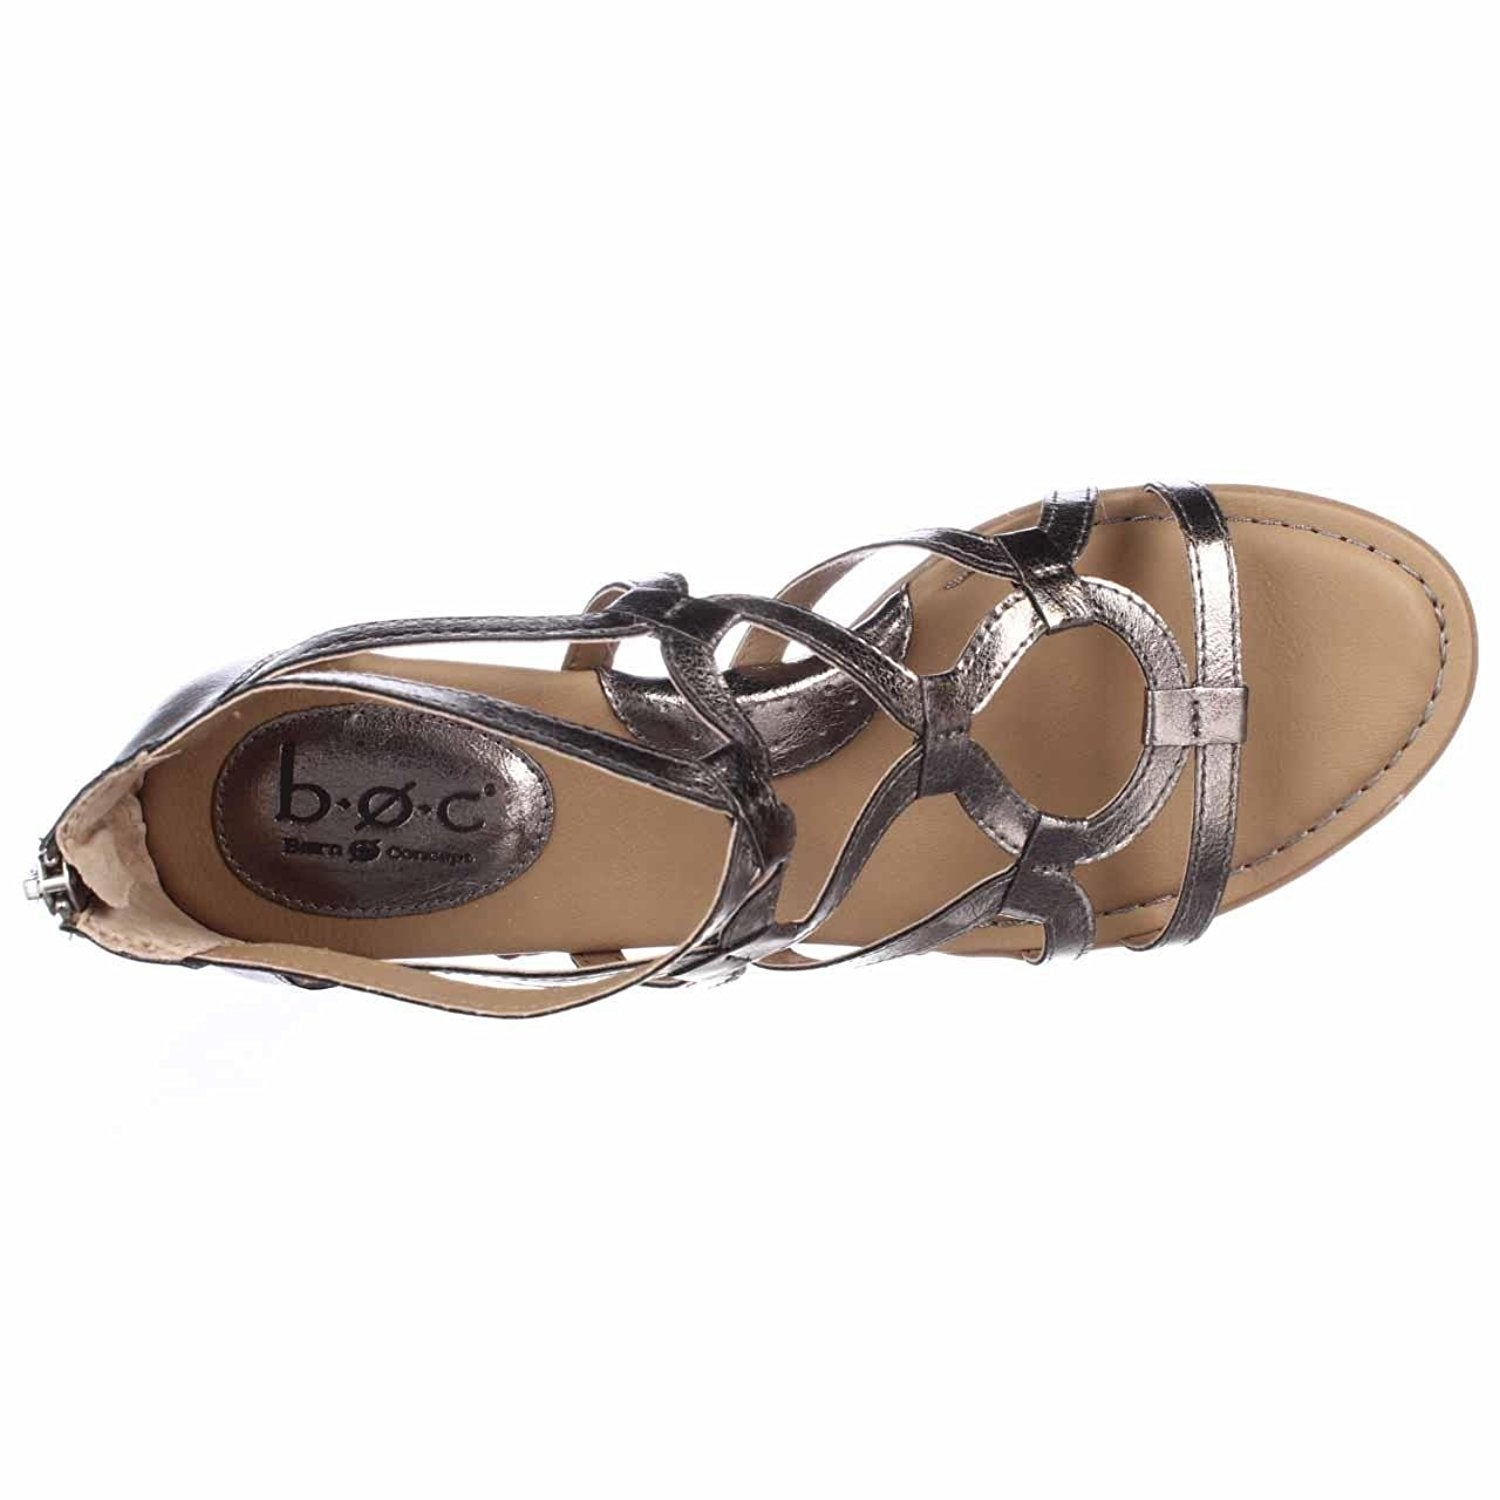 9779cd792dd4 Shop B.O.C Womens Pawel Open Toe Casual Gladiator Sandals - Free Shipping  On Orders Over  45 - Overstock - 19679372